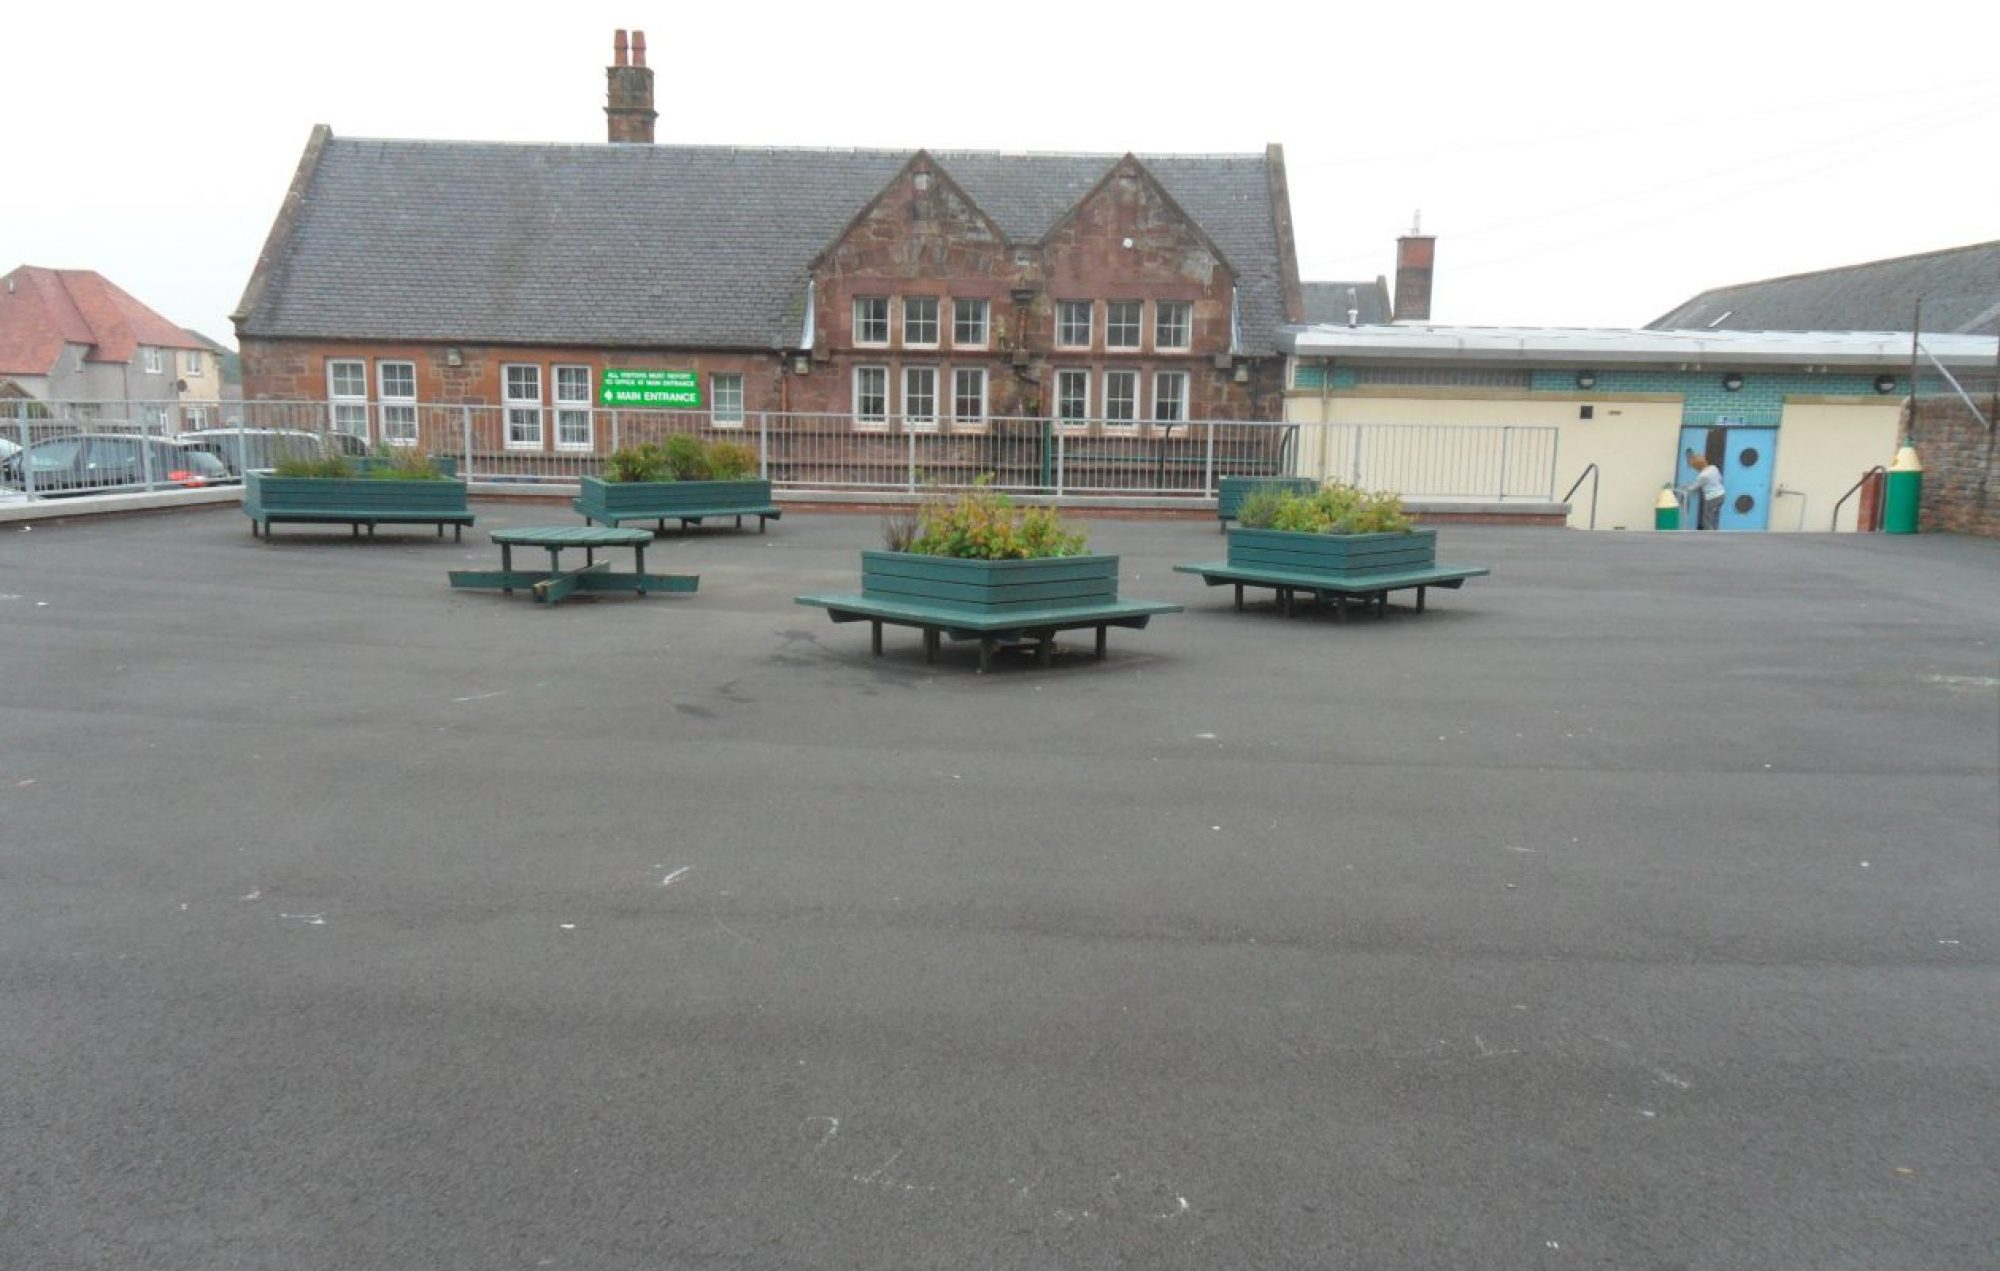 Cairn Primary School & Early Years Centre